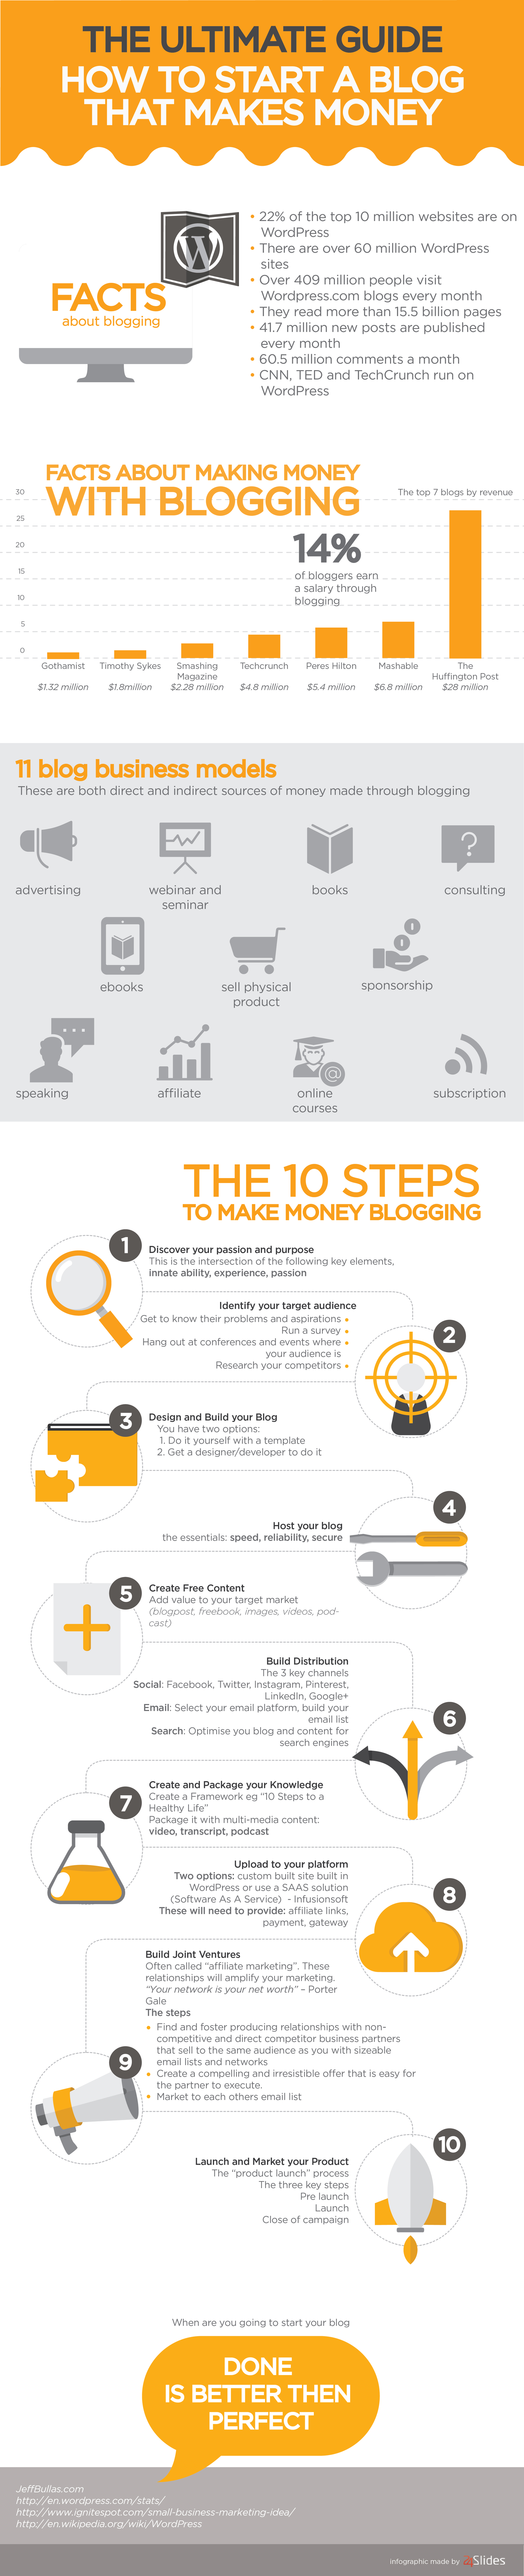 The Ultimate Guide – The 10 Key Steps For How To Start A Blog That Makes Money image Ultimate blogging guide.jpg